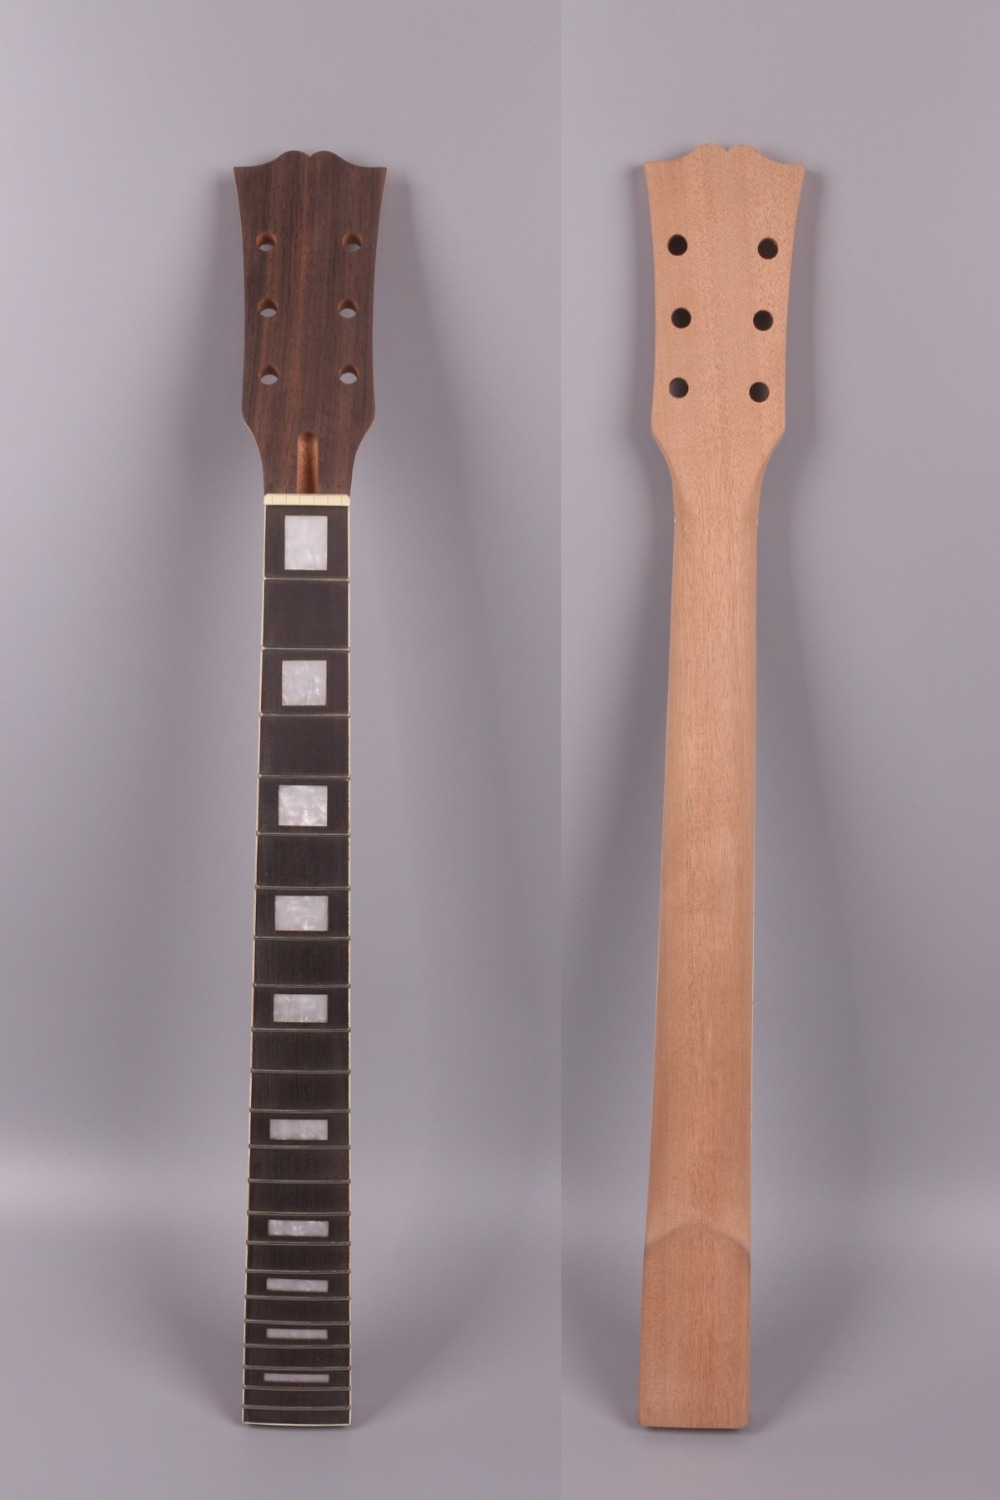 Yinfente electric guitar neck 22 fret Paddle head rosewood fretboard Block LP electric guitar neck replacement #l4 wholesale cnbald 6 string guitar fdr str electric guitar rosewood fretboard 3 pickups in cream 130516